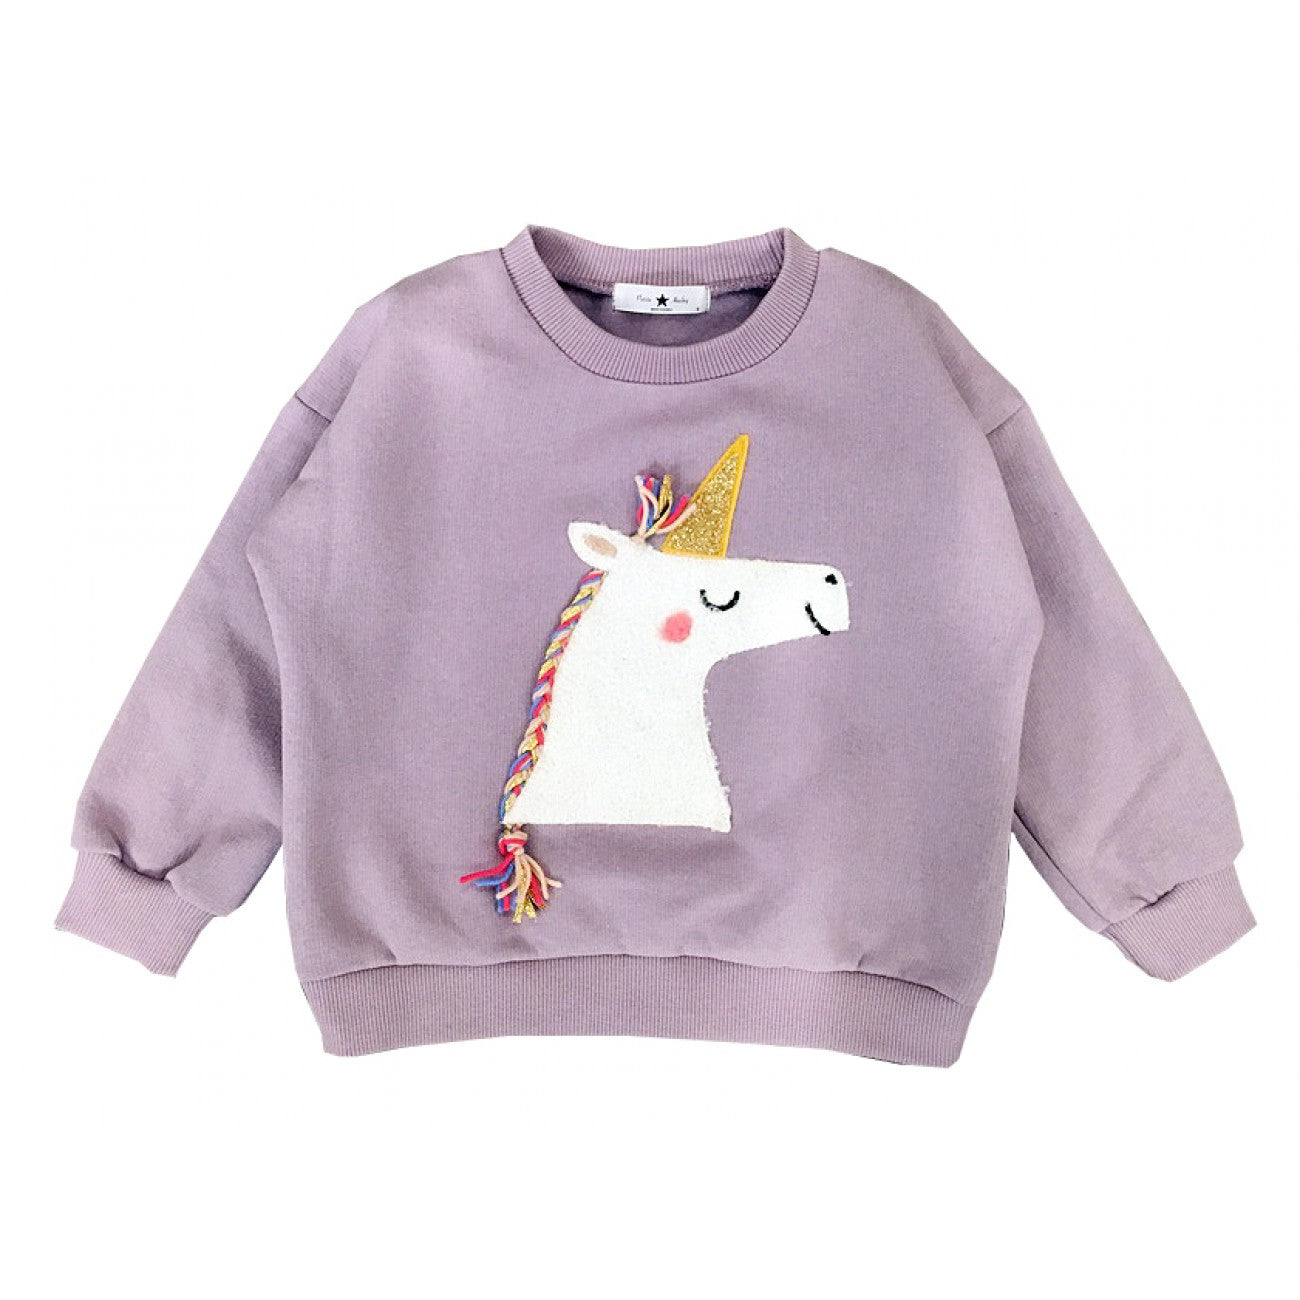 Unicorn Sweatshirt- Lavender